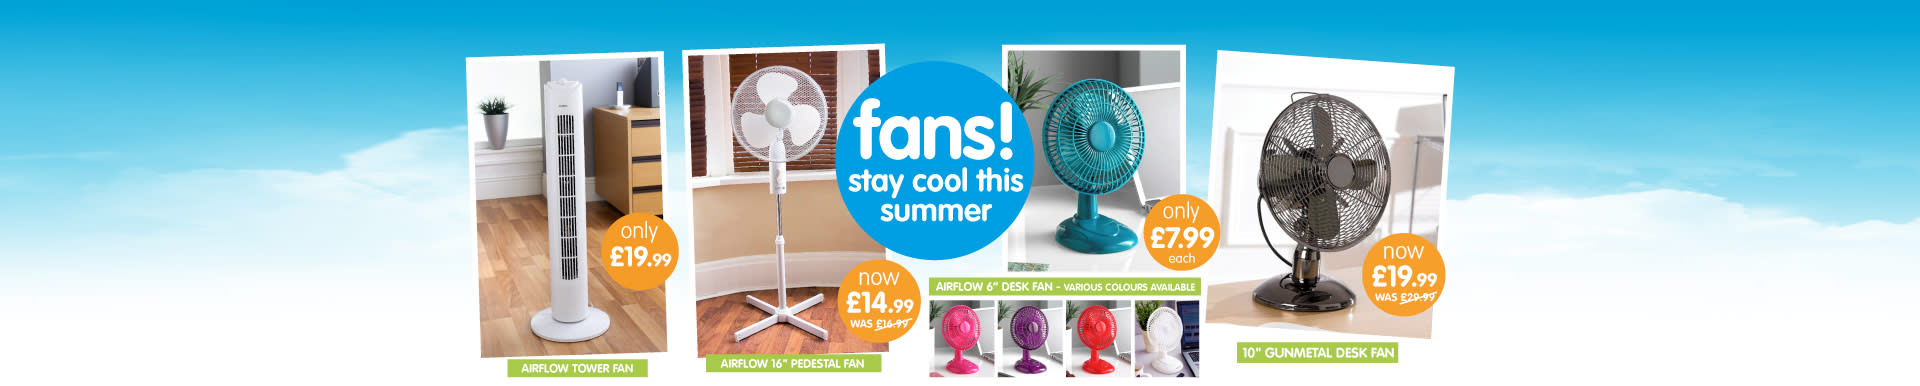 Save on electric fans and stay cool this summer.